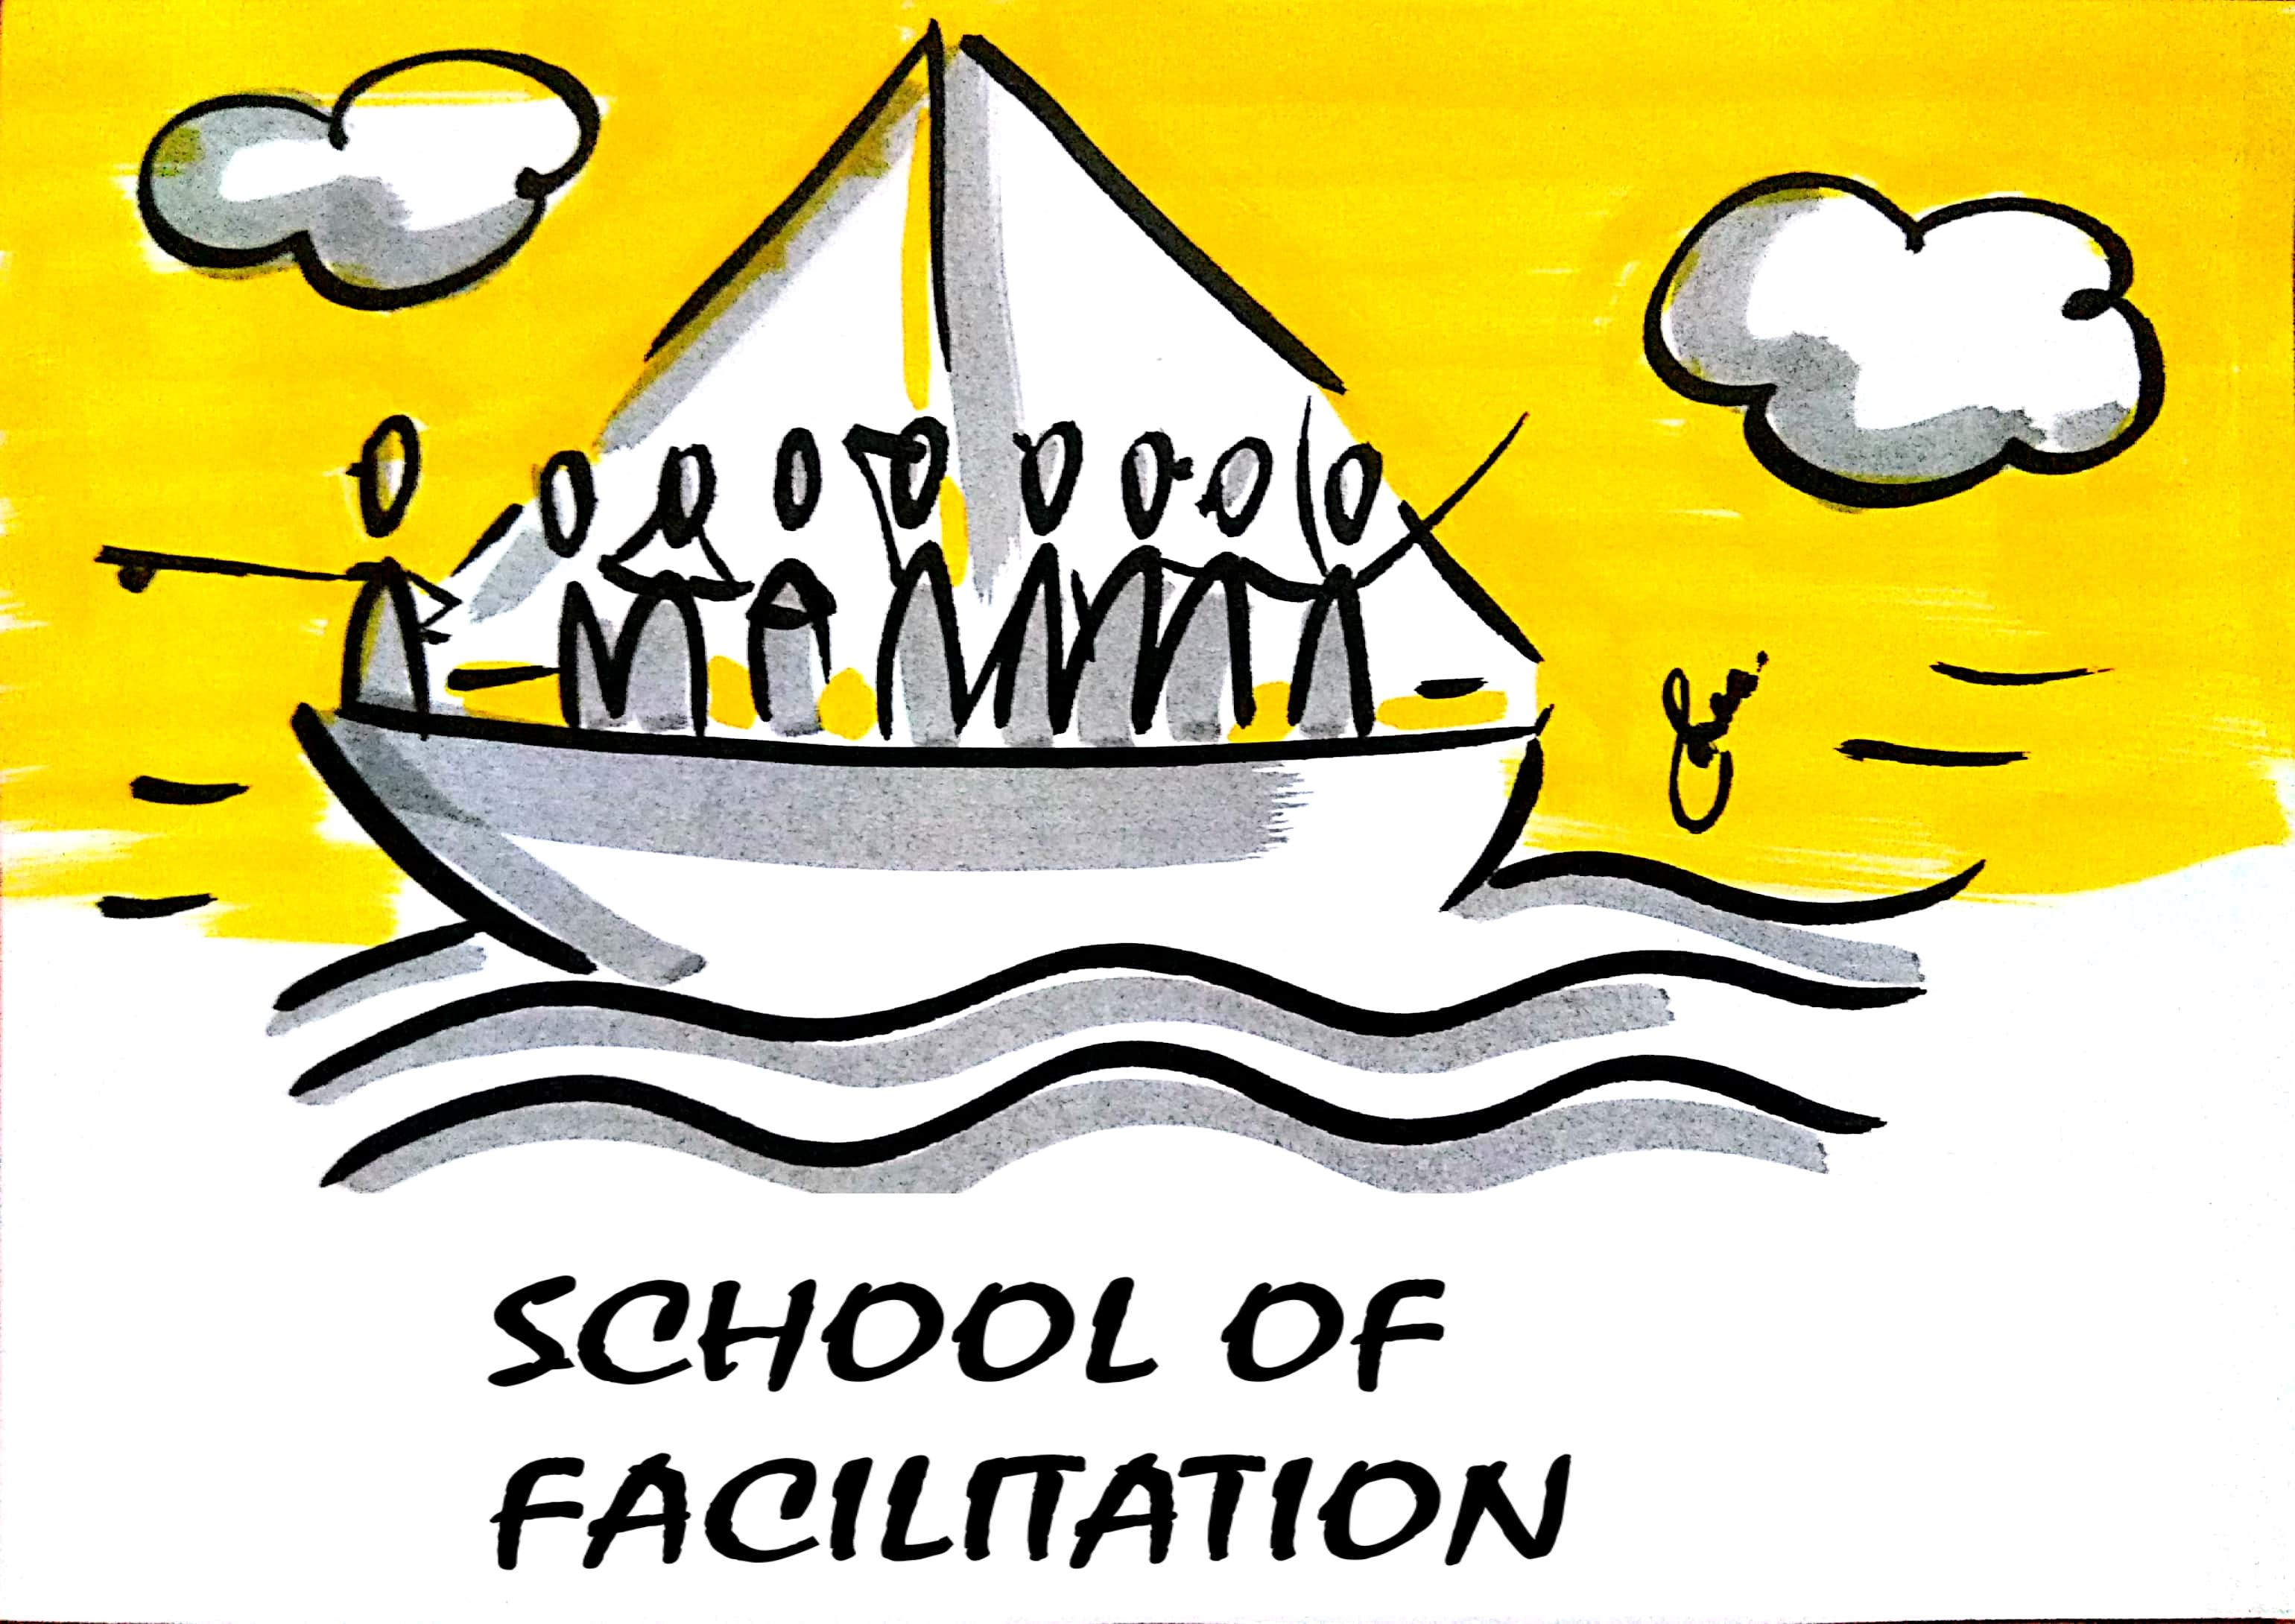 School of facilitation